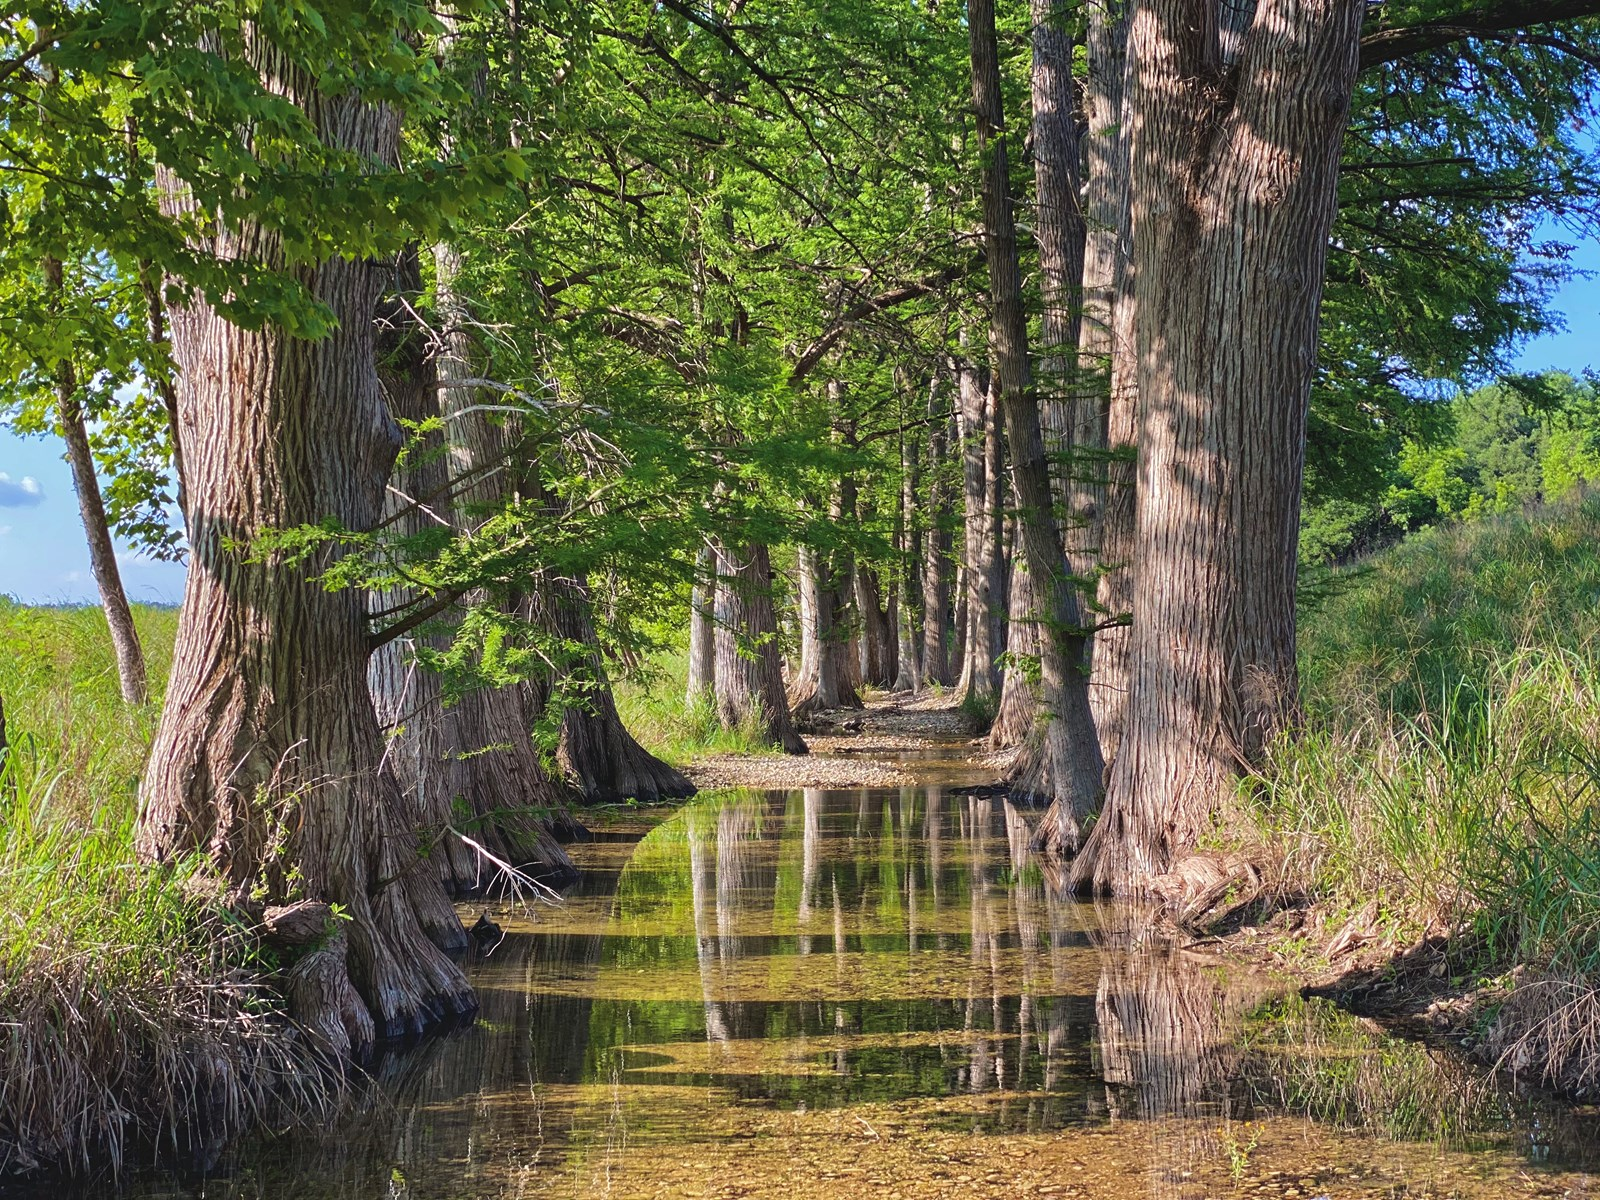 Land for Sale in Sisterdale, TX - Kendall Co.